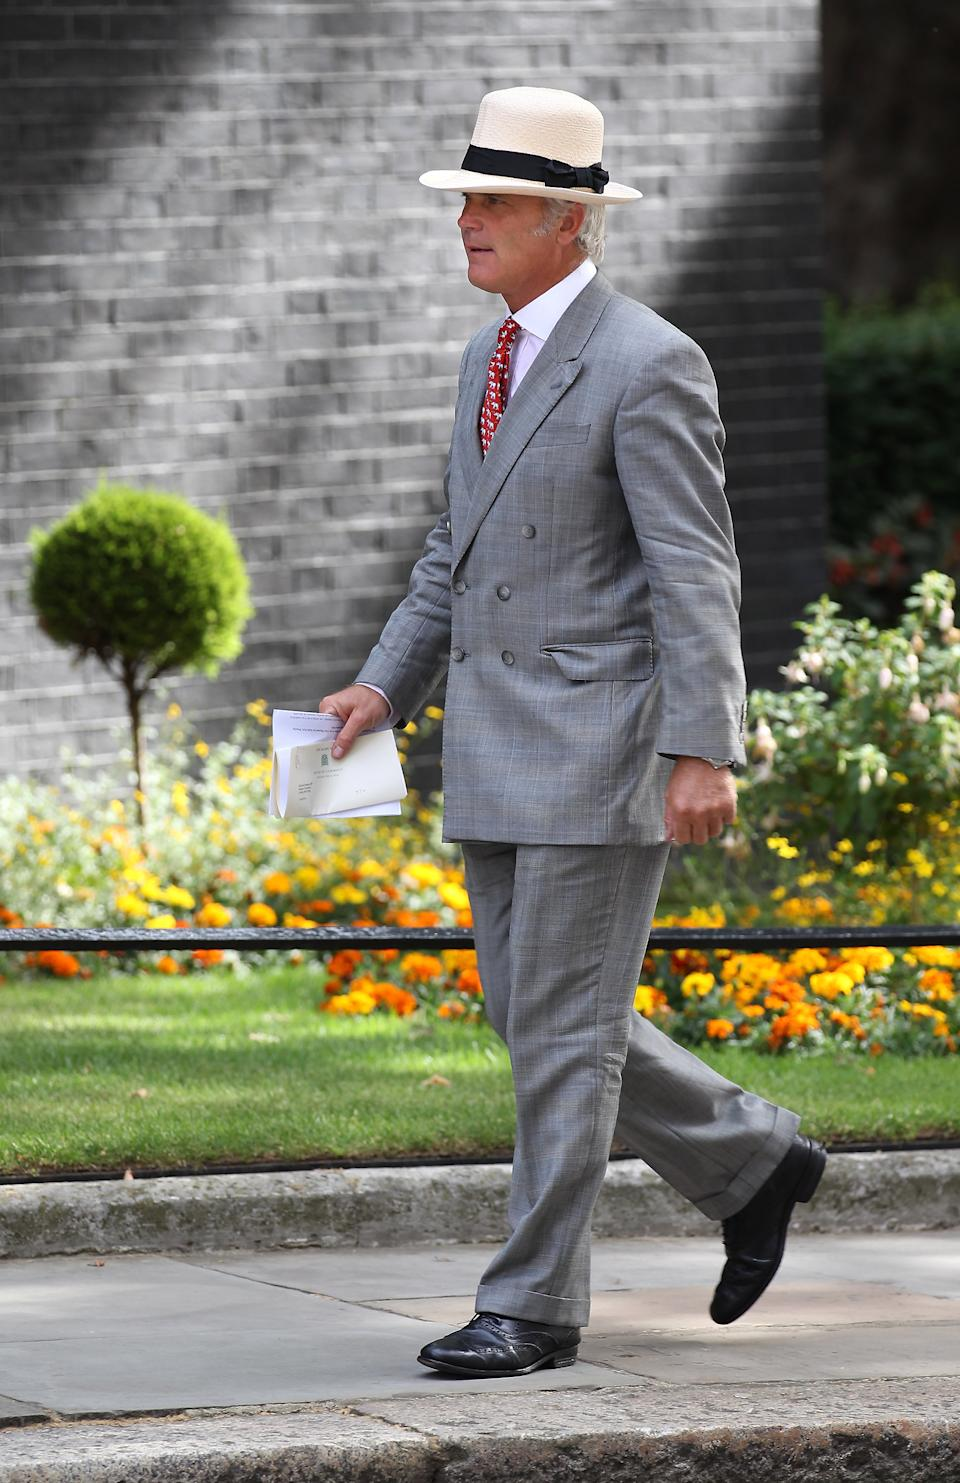 LONDON, ENGLAND - JULY 06: Desmond Swayne Parliamentary Secretary to Prime Minister David Cameron arrives in Downing Street on July 6, 2010 in London, England. Later Prime Minister David Cameron will chair a meeting of the National Security Council. (Photo by Peter Macdiarmid/Getty Images)